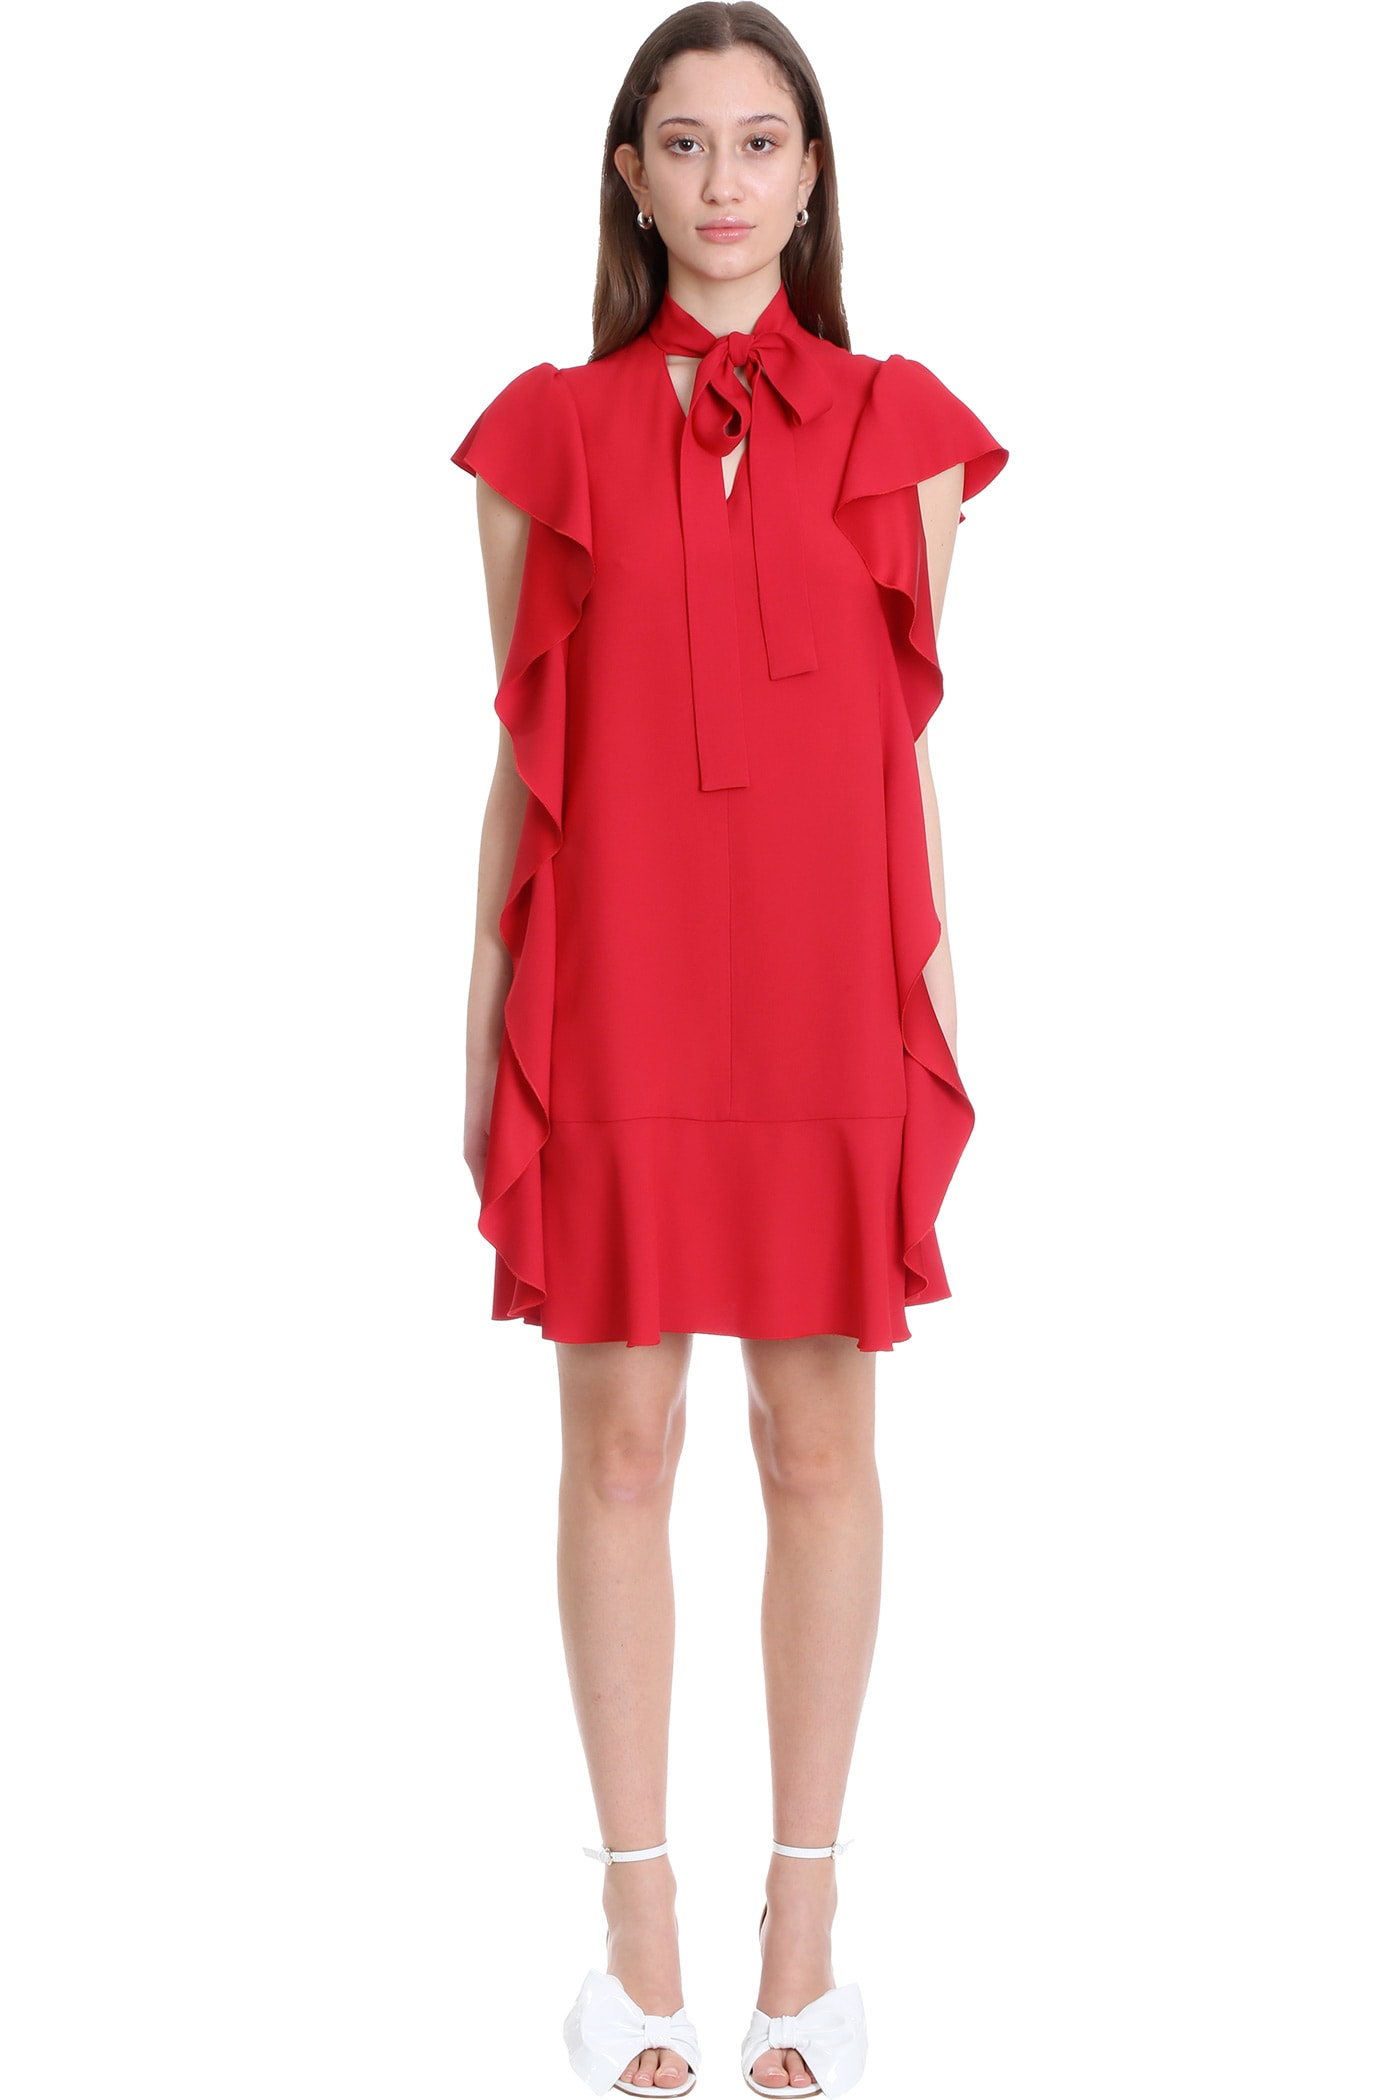 RED Valentino Dress In Red Viscose